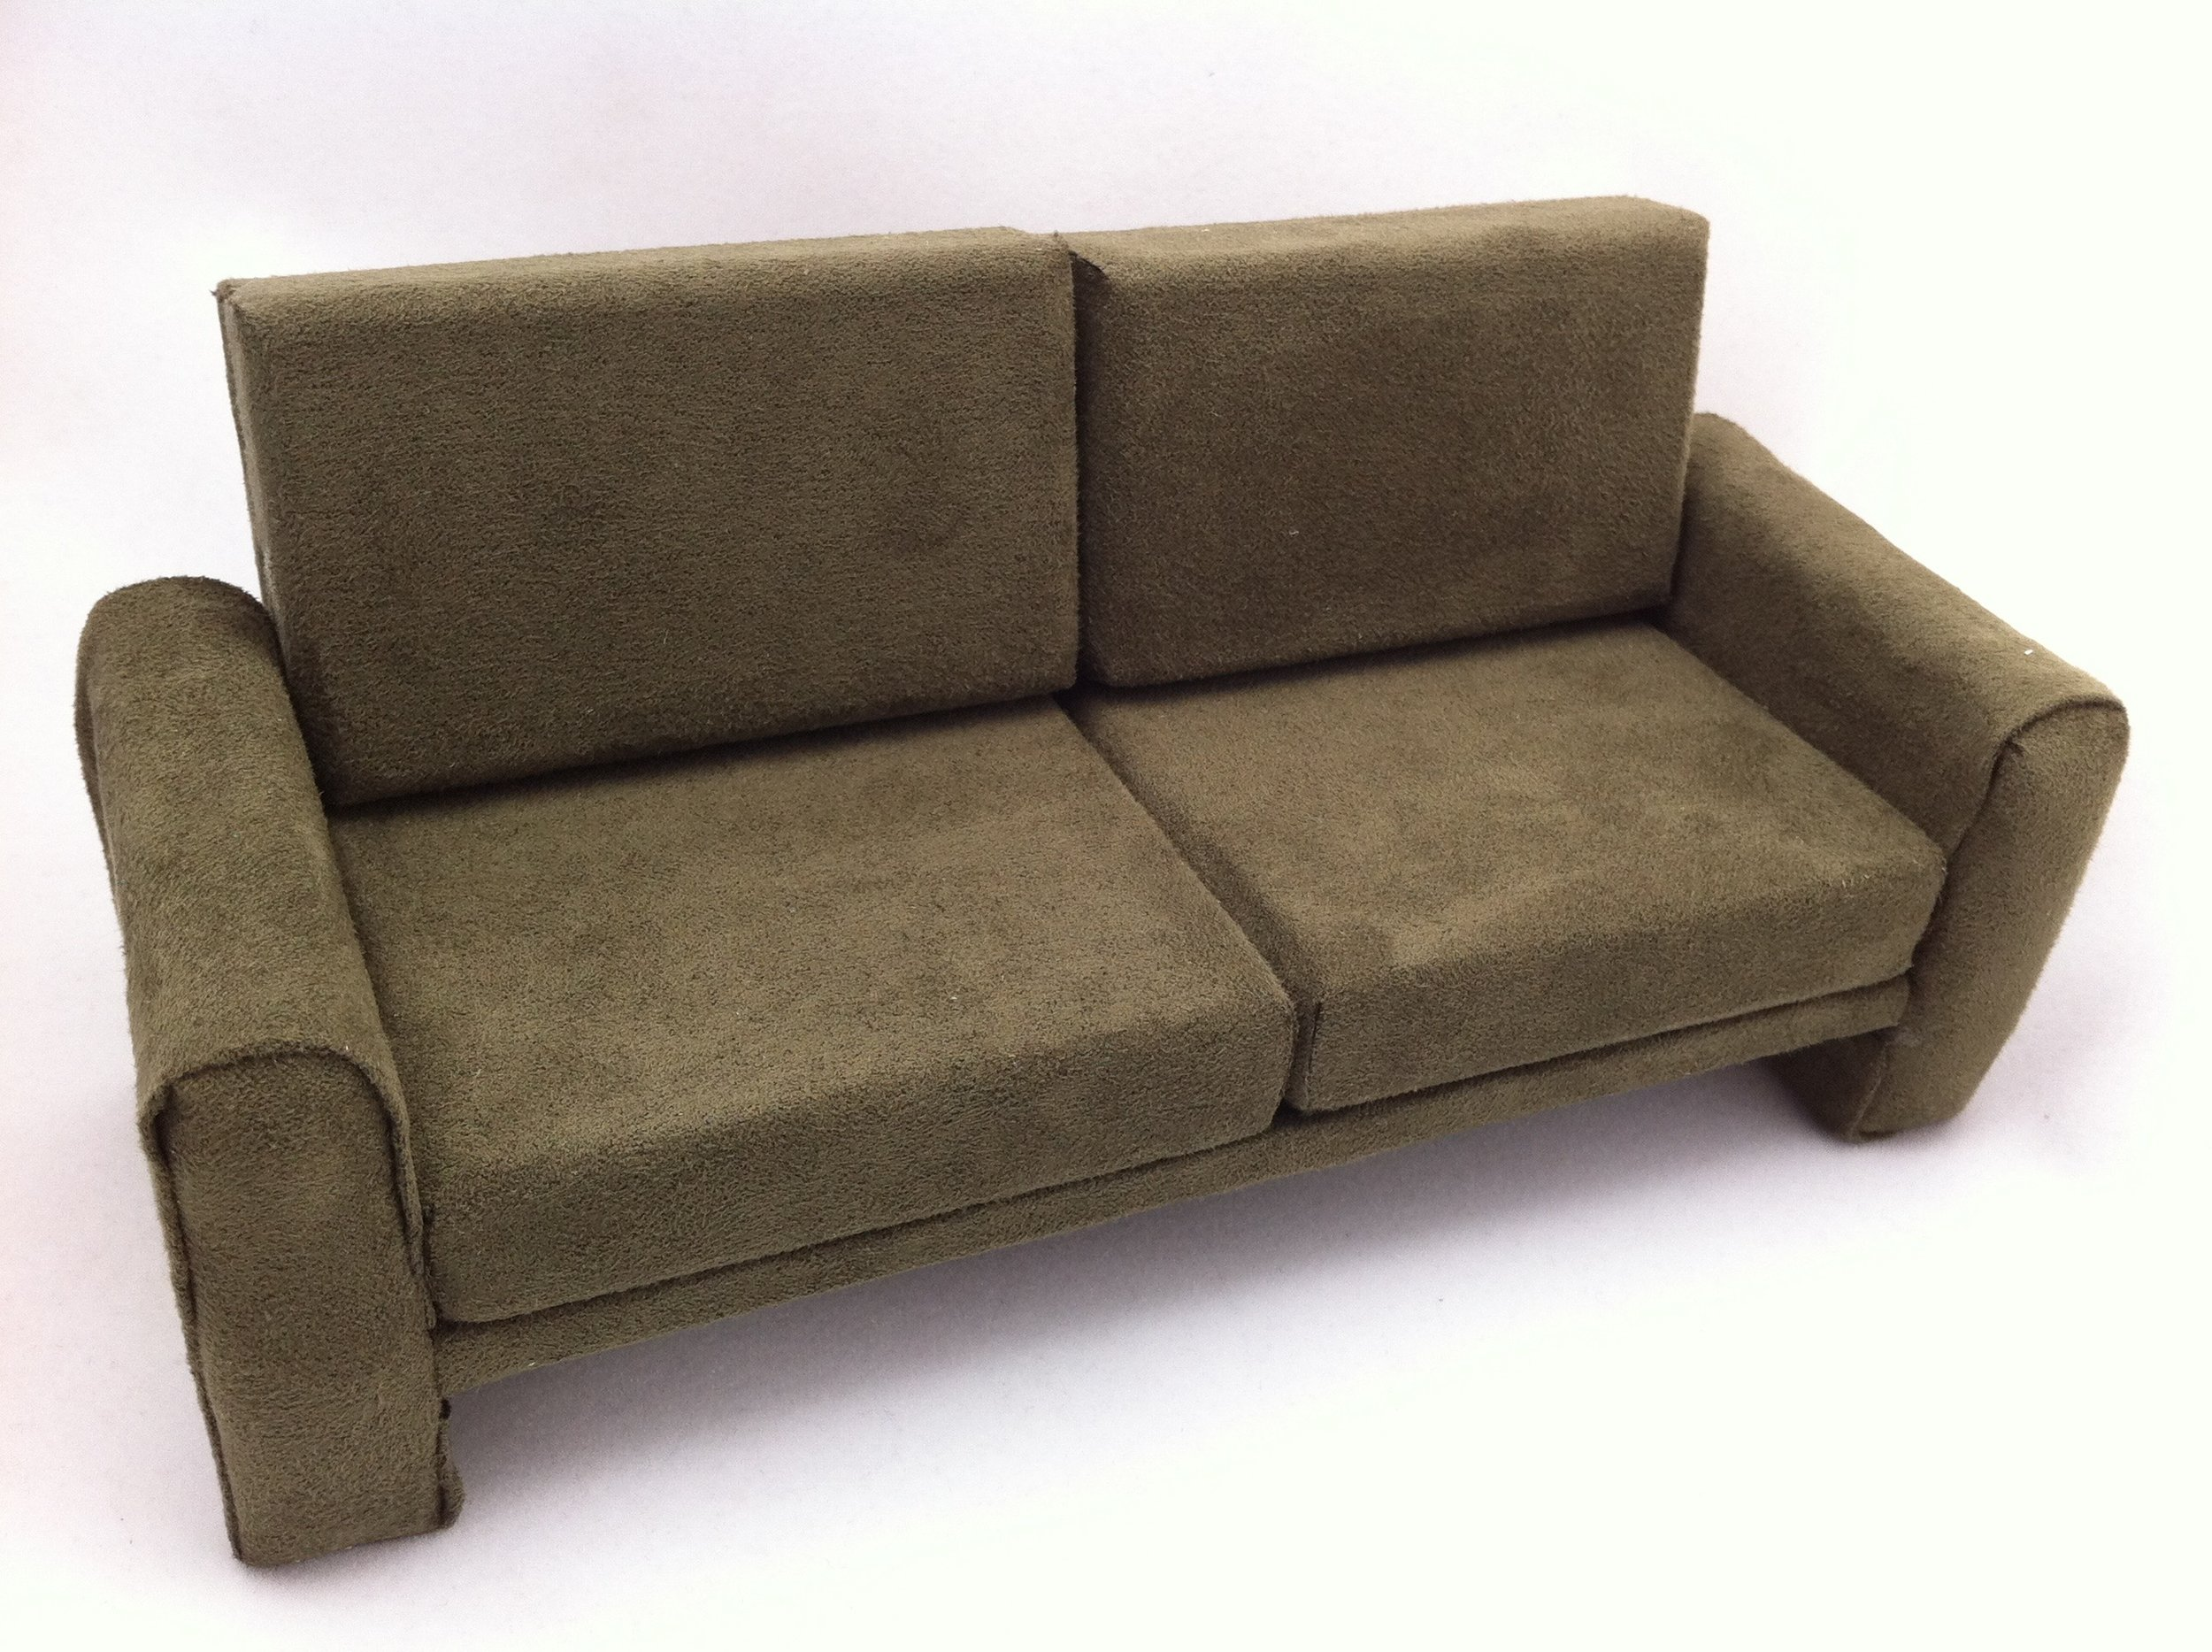 9_couch.jpg